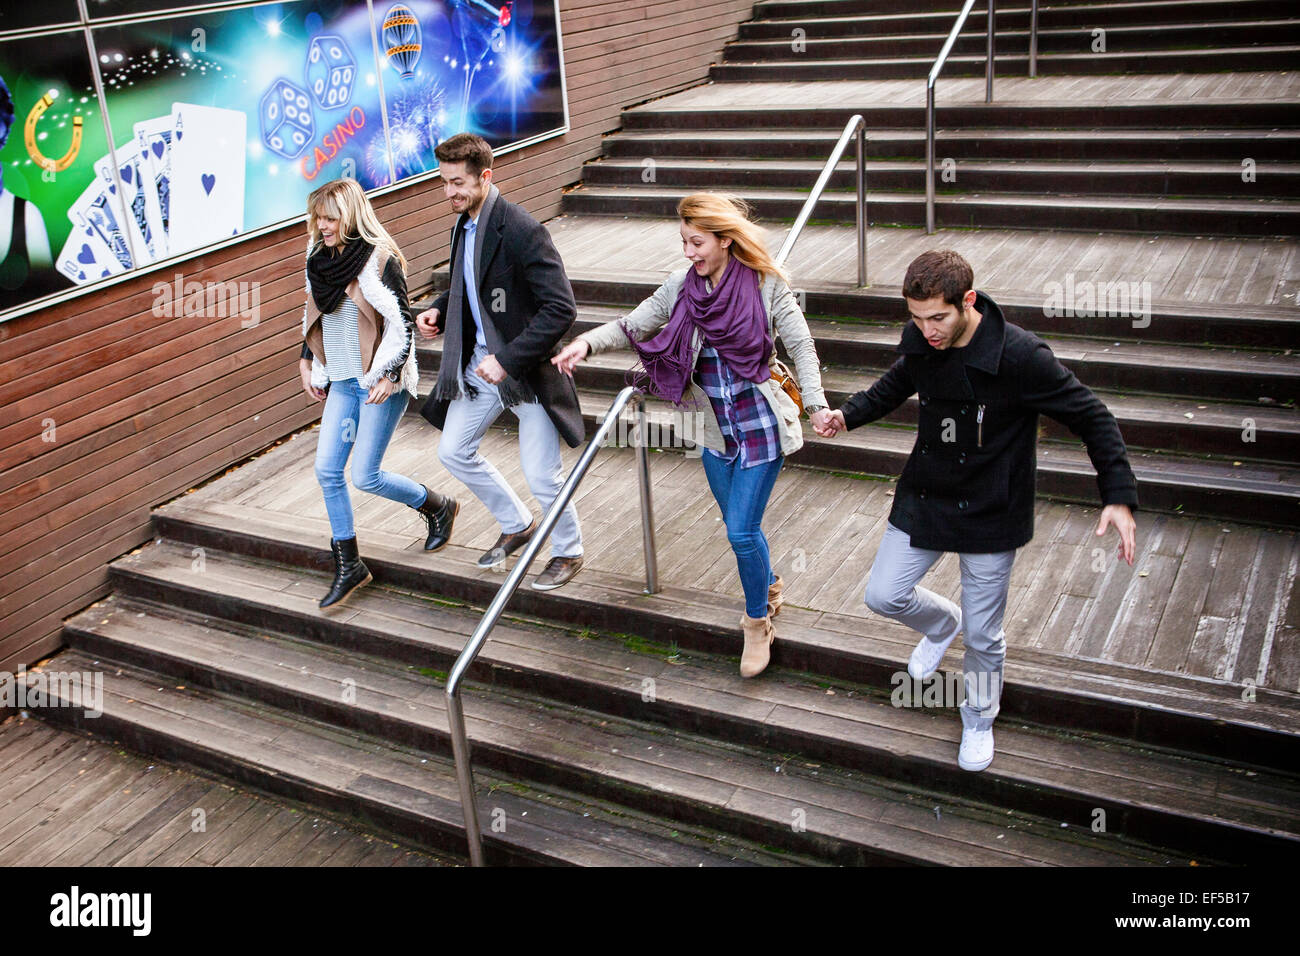 Group of friends walking down steps in town - Stock Image